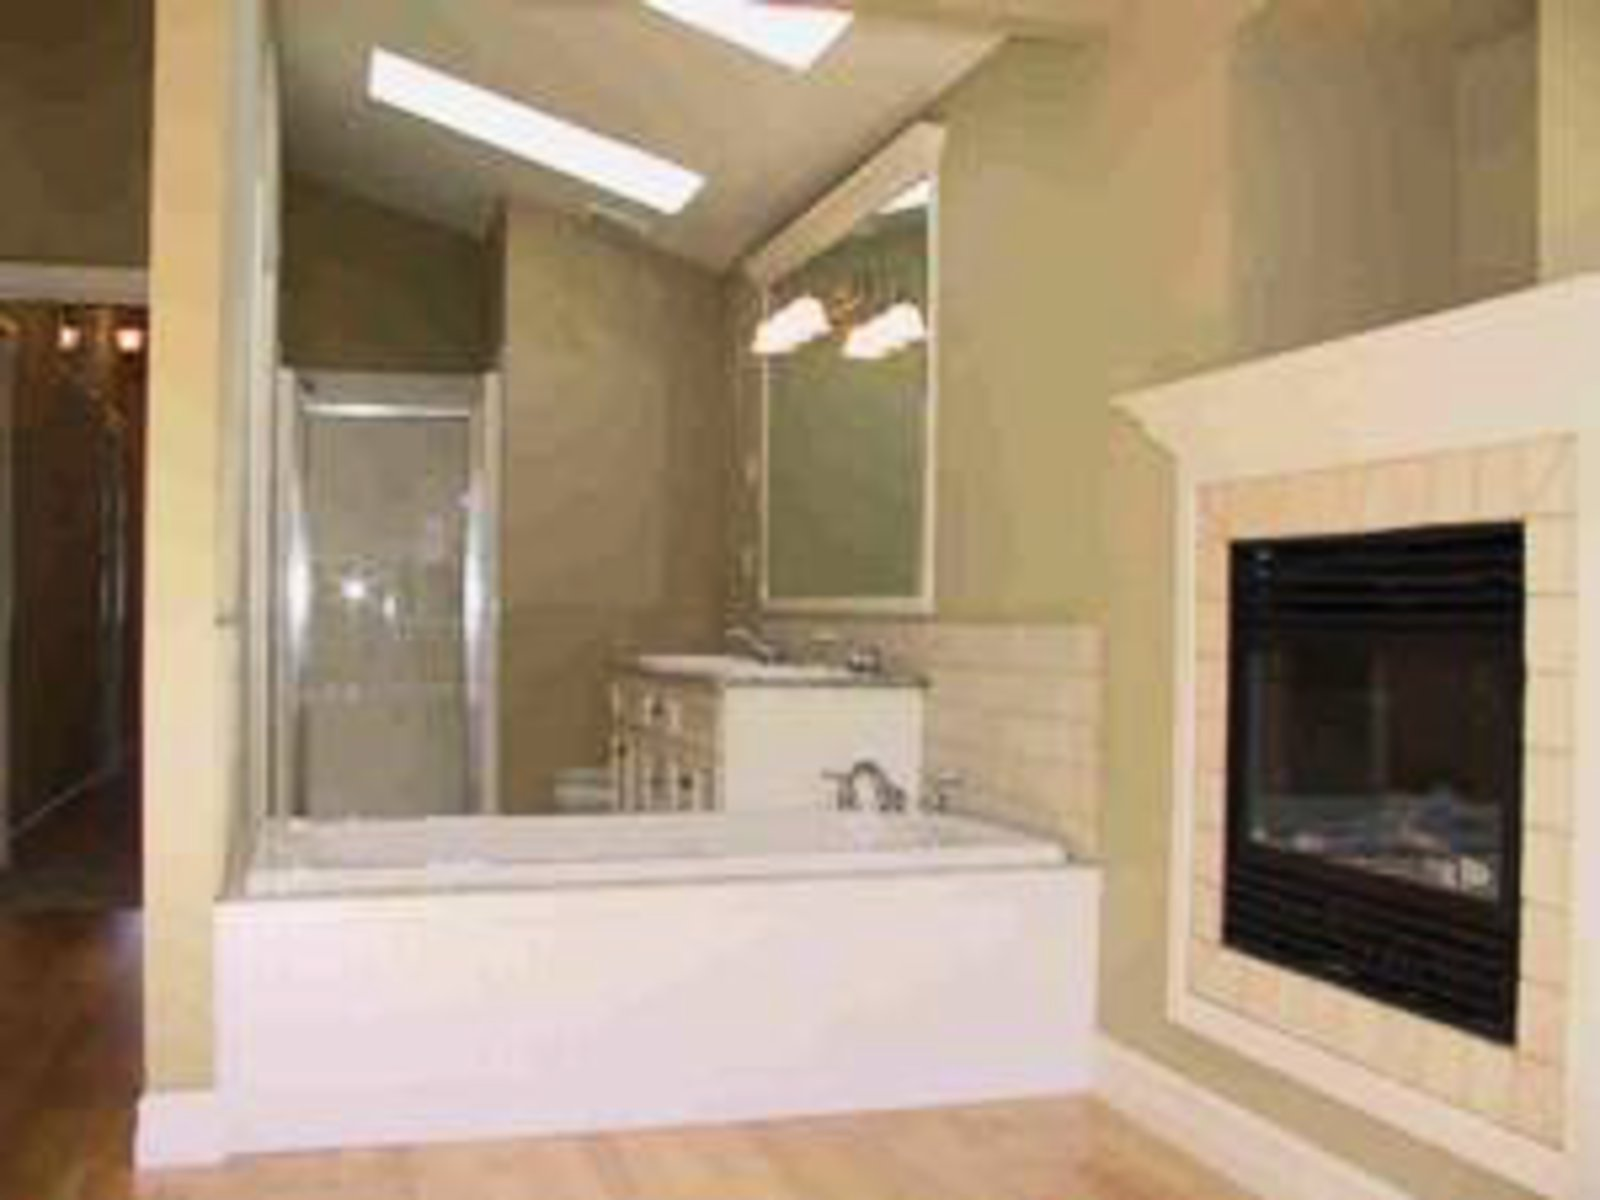 Master Bedroom Ensuite 2 skylights, gas fireplace, Jacuzzi, 2 sinks